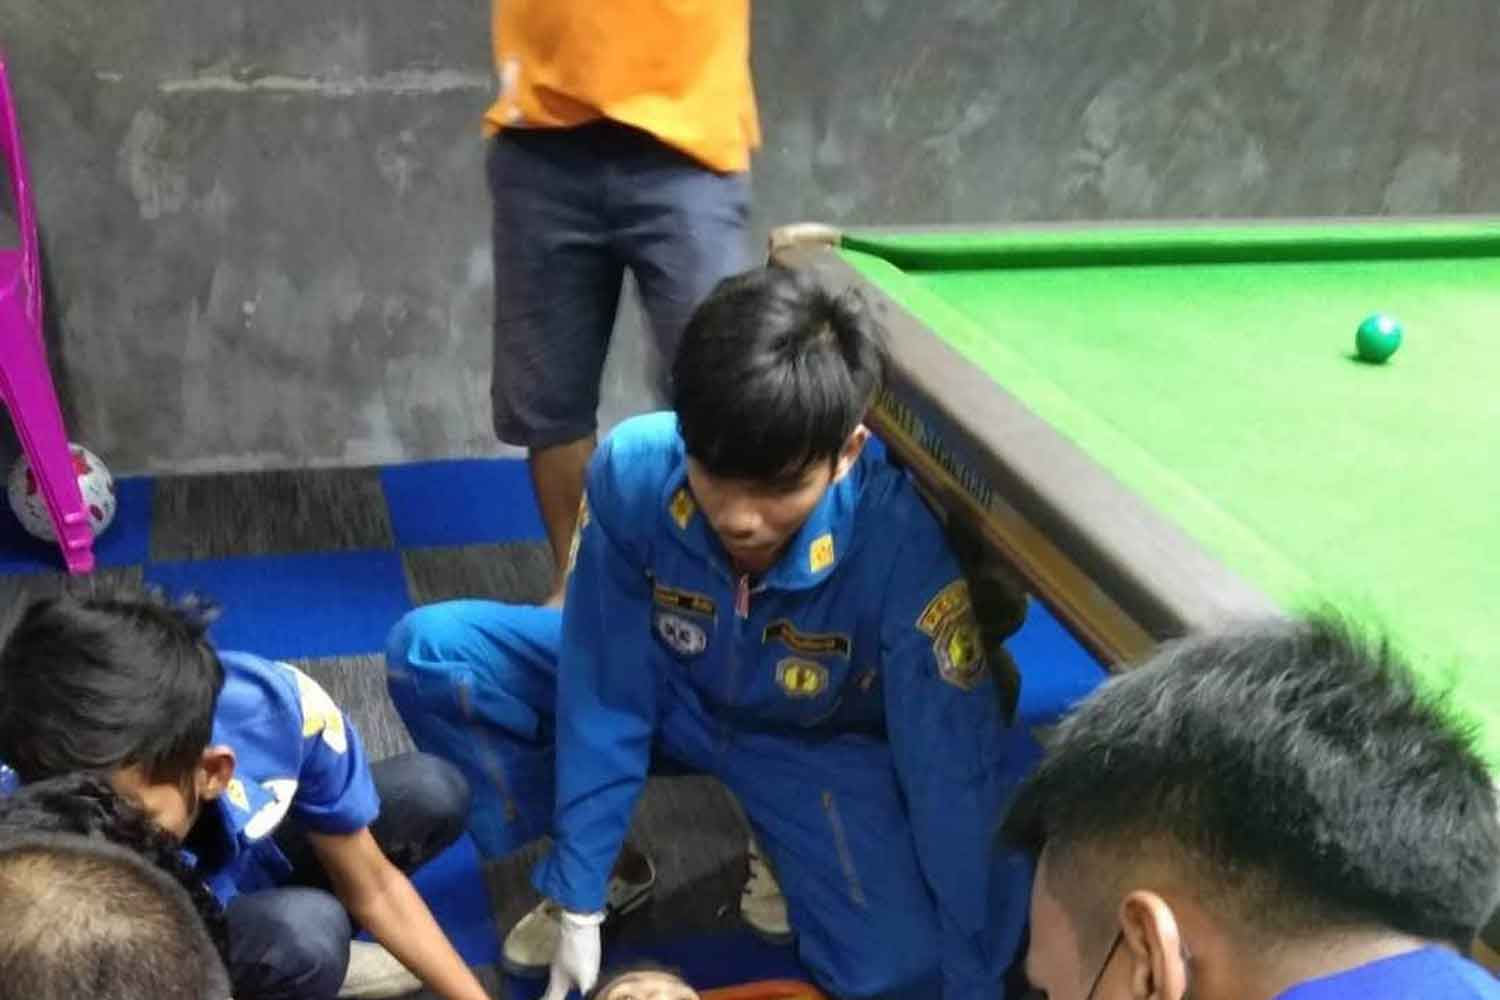 Rescue workers treat the grievously wounded victim at his snooker club before rushing him to hospital, in Tha Maka district of Kanchanaburi, on Thursday night. He died. (Photo: Piyarat Chongcharoen)